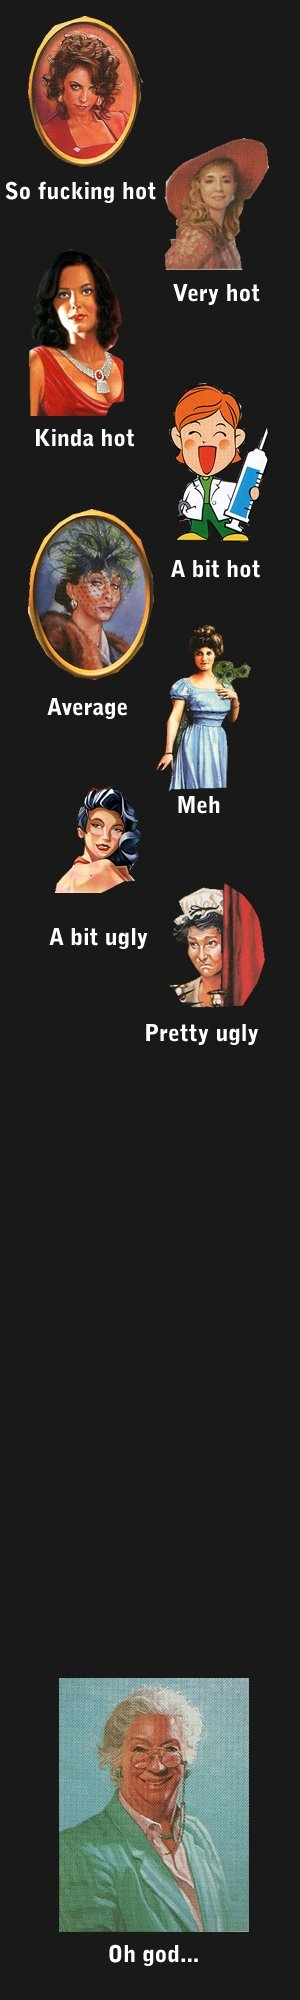 How hot are you. on a scale of scarlet to ?. Pretty ugly